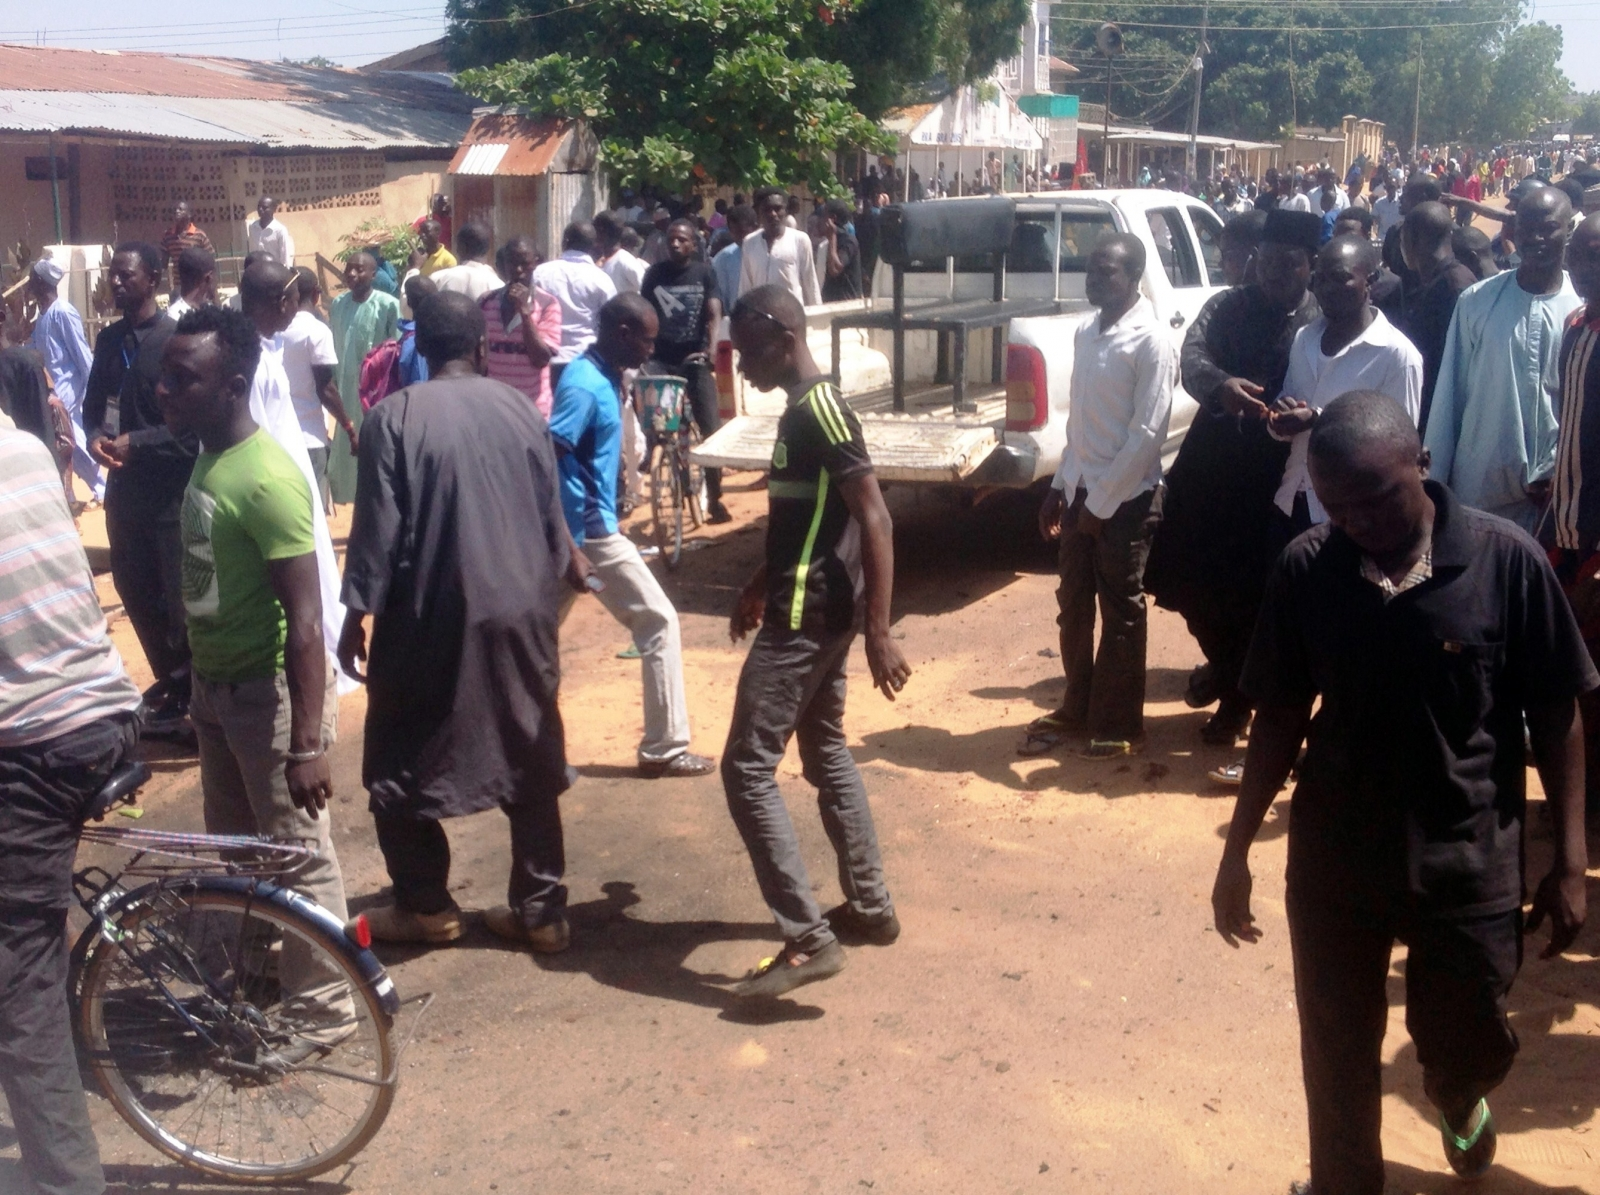 Shiite faithful dressed in black walk at the scene of a suicide blast in the northeast Nigerian town of Potiskum